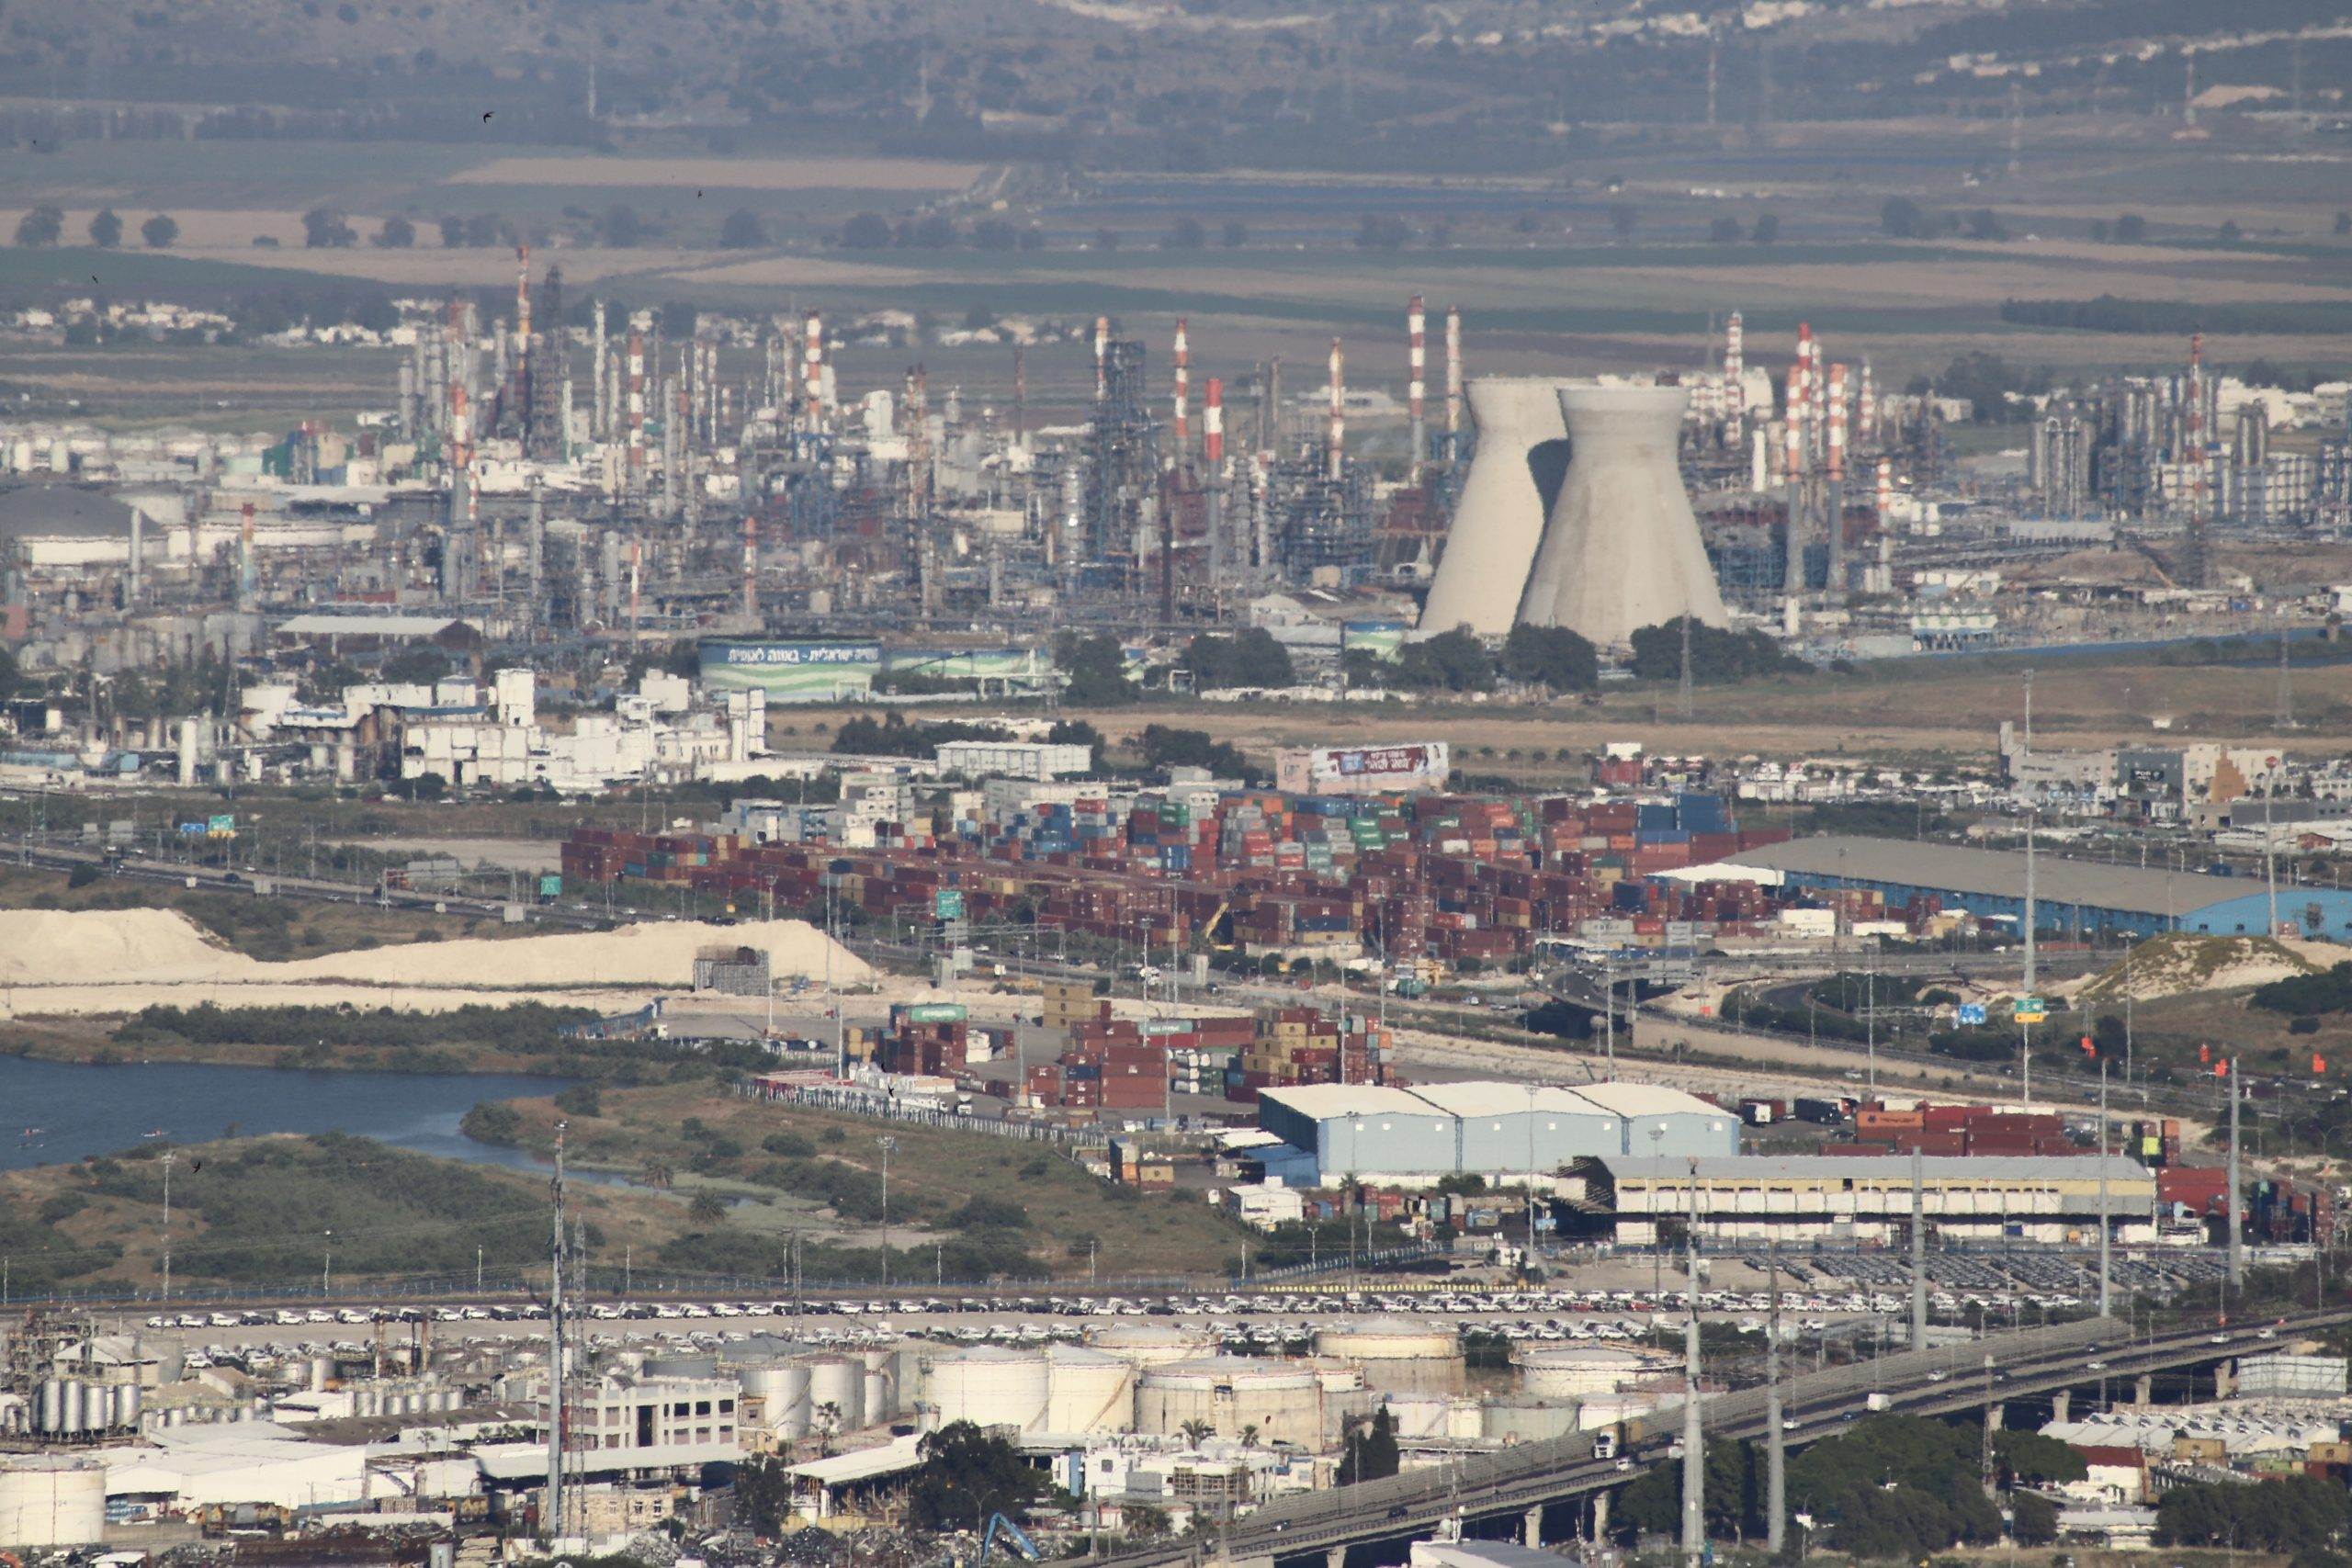 Iconic cooling towers at Haifa Refinery (Bazan Group)